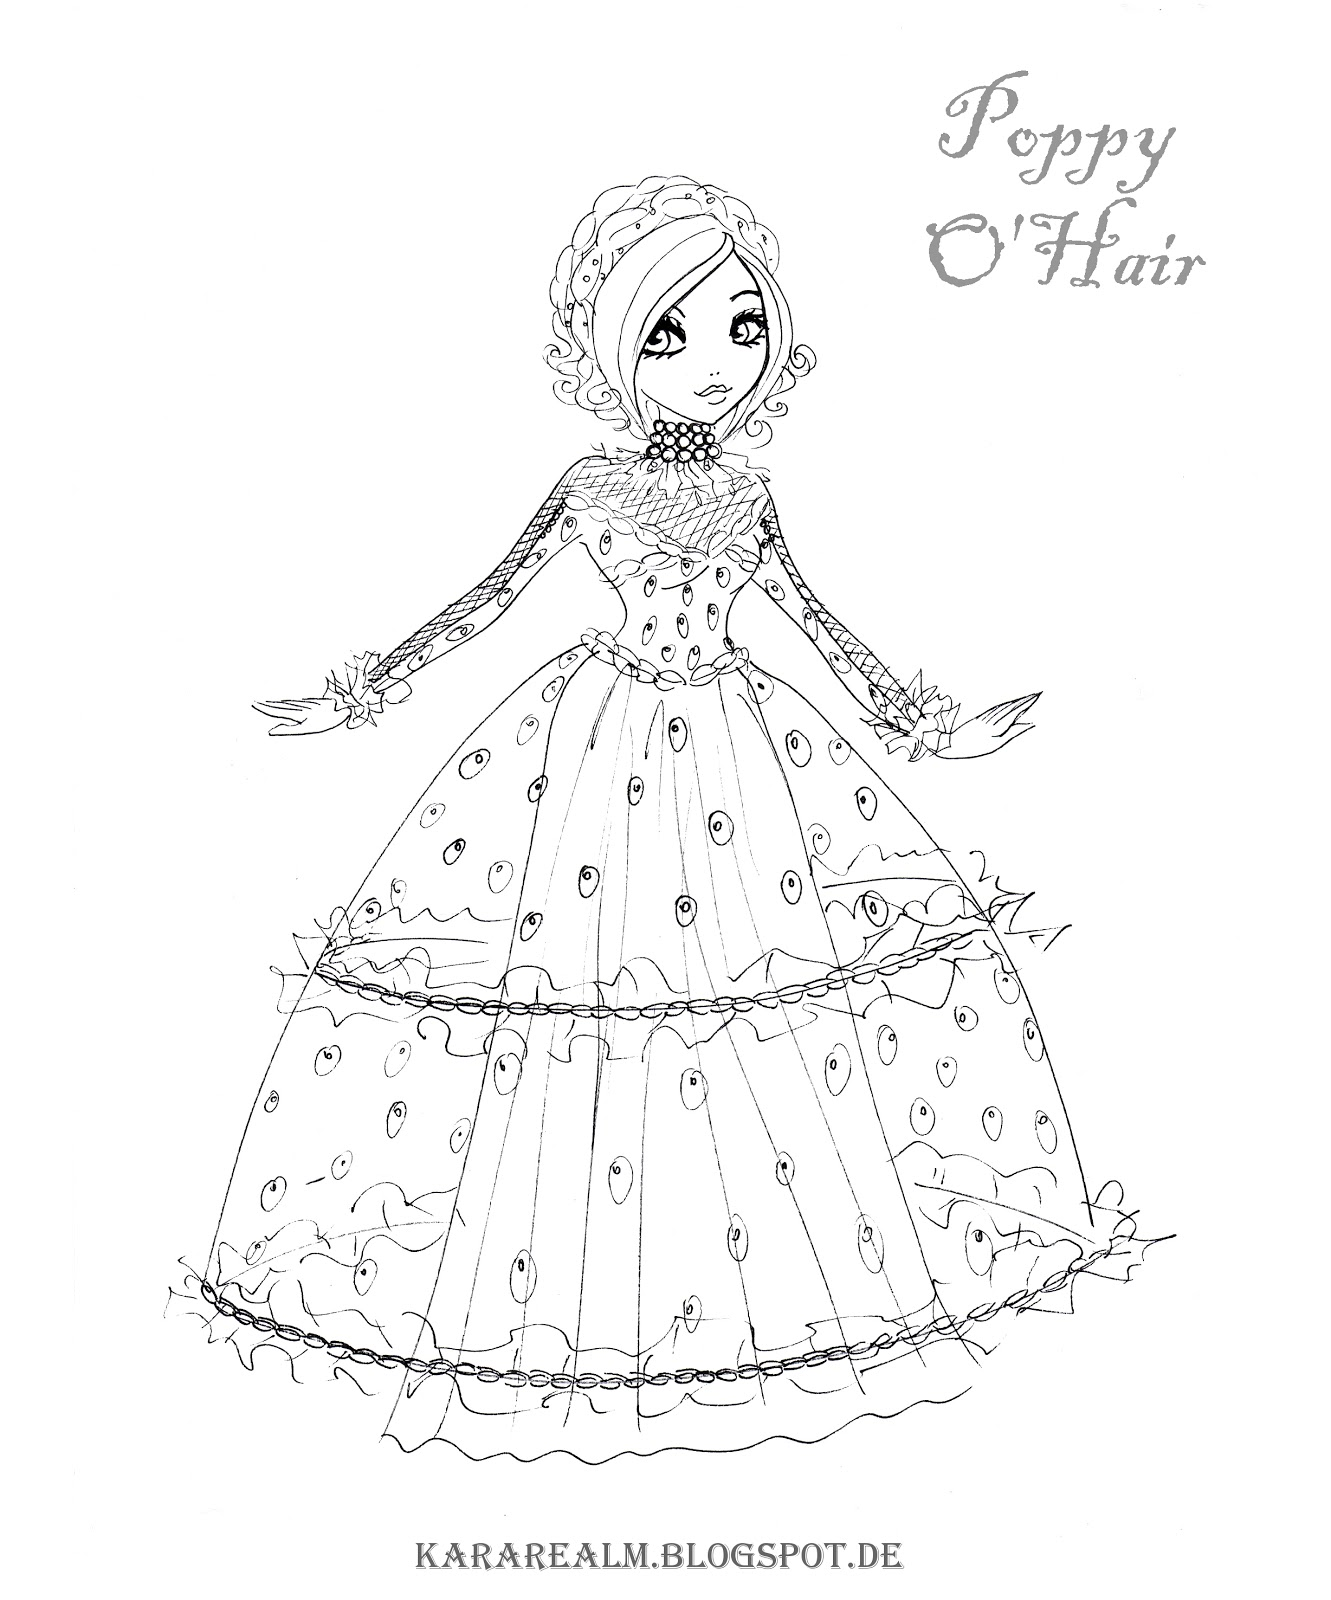 1331x1600 Kara Realm Ever After High Coloring Pages Coloring Pages